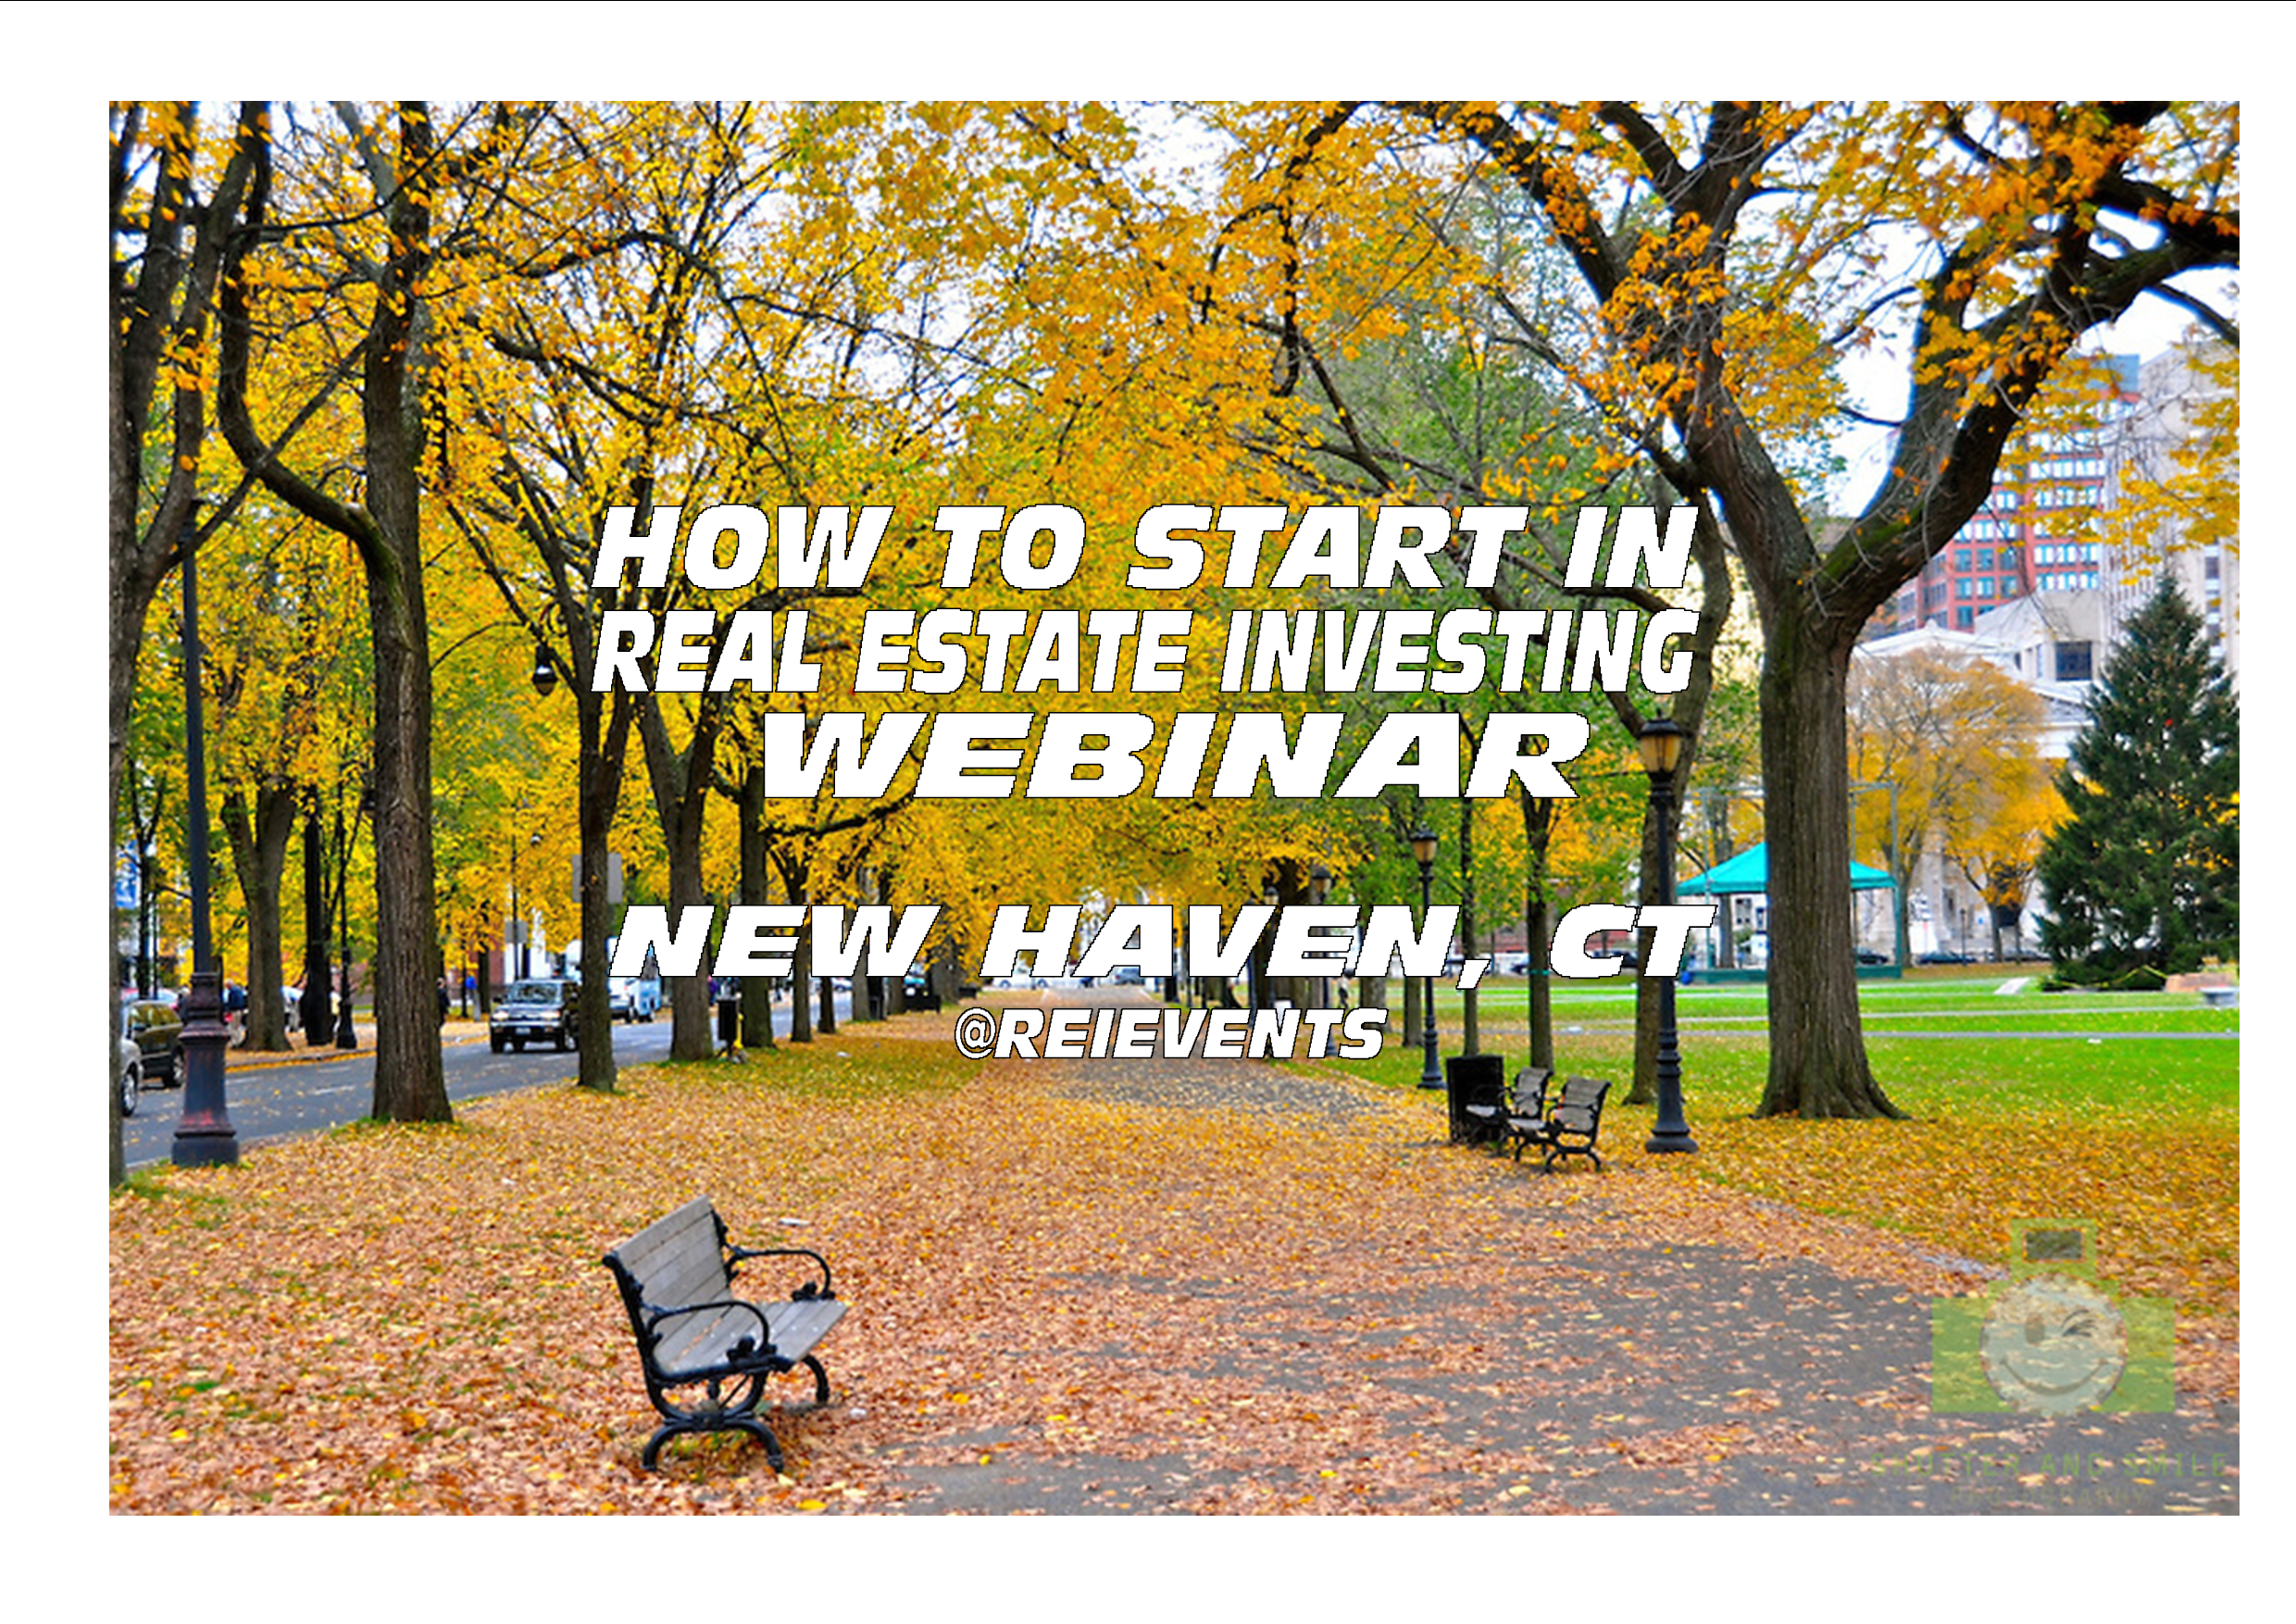 HOW TO START IN REAL ESTATE INVESTING - WEBINAR - NEW HAVEN, CT